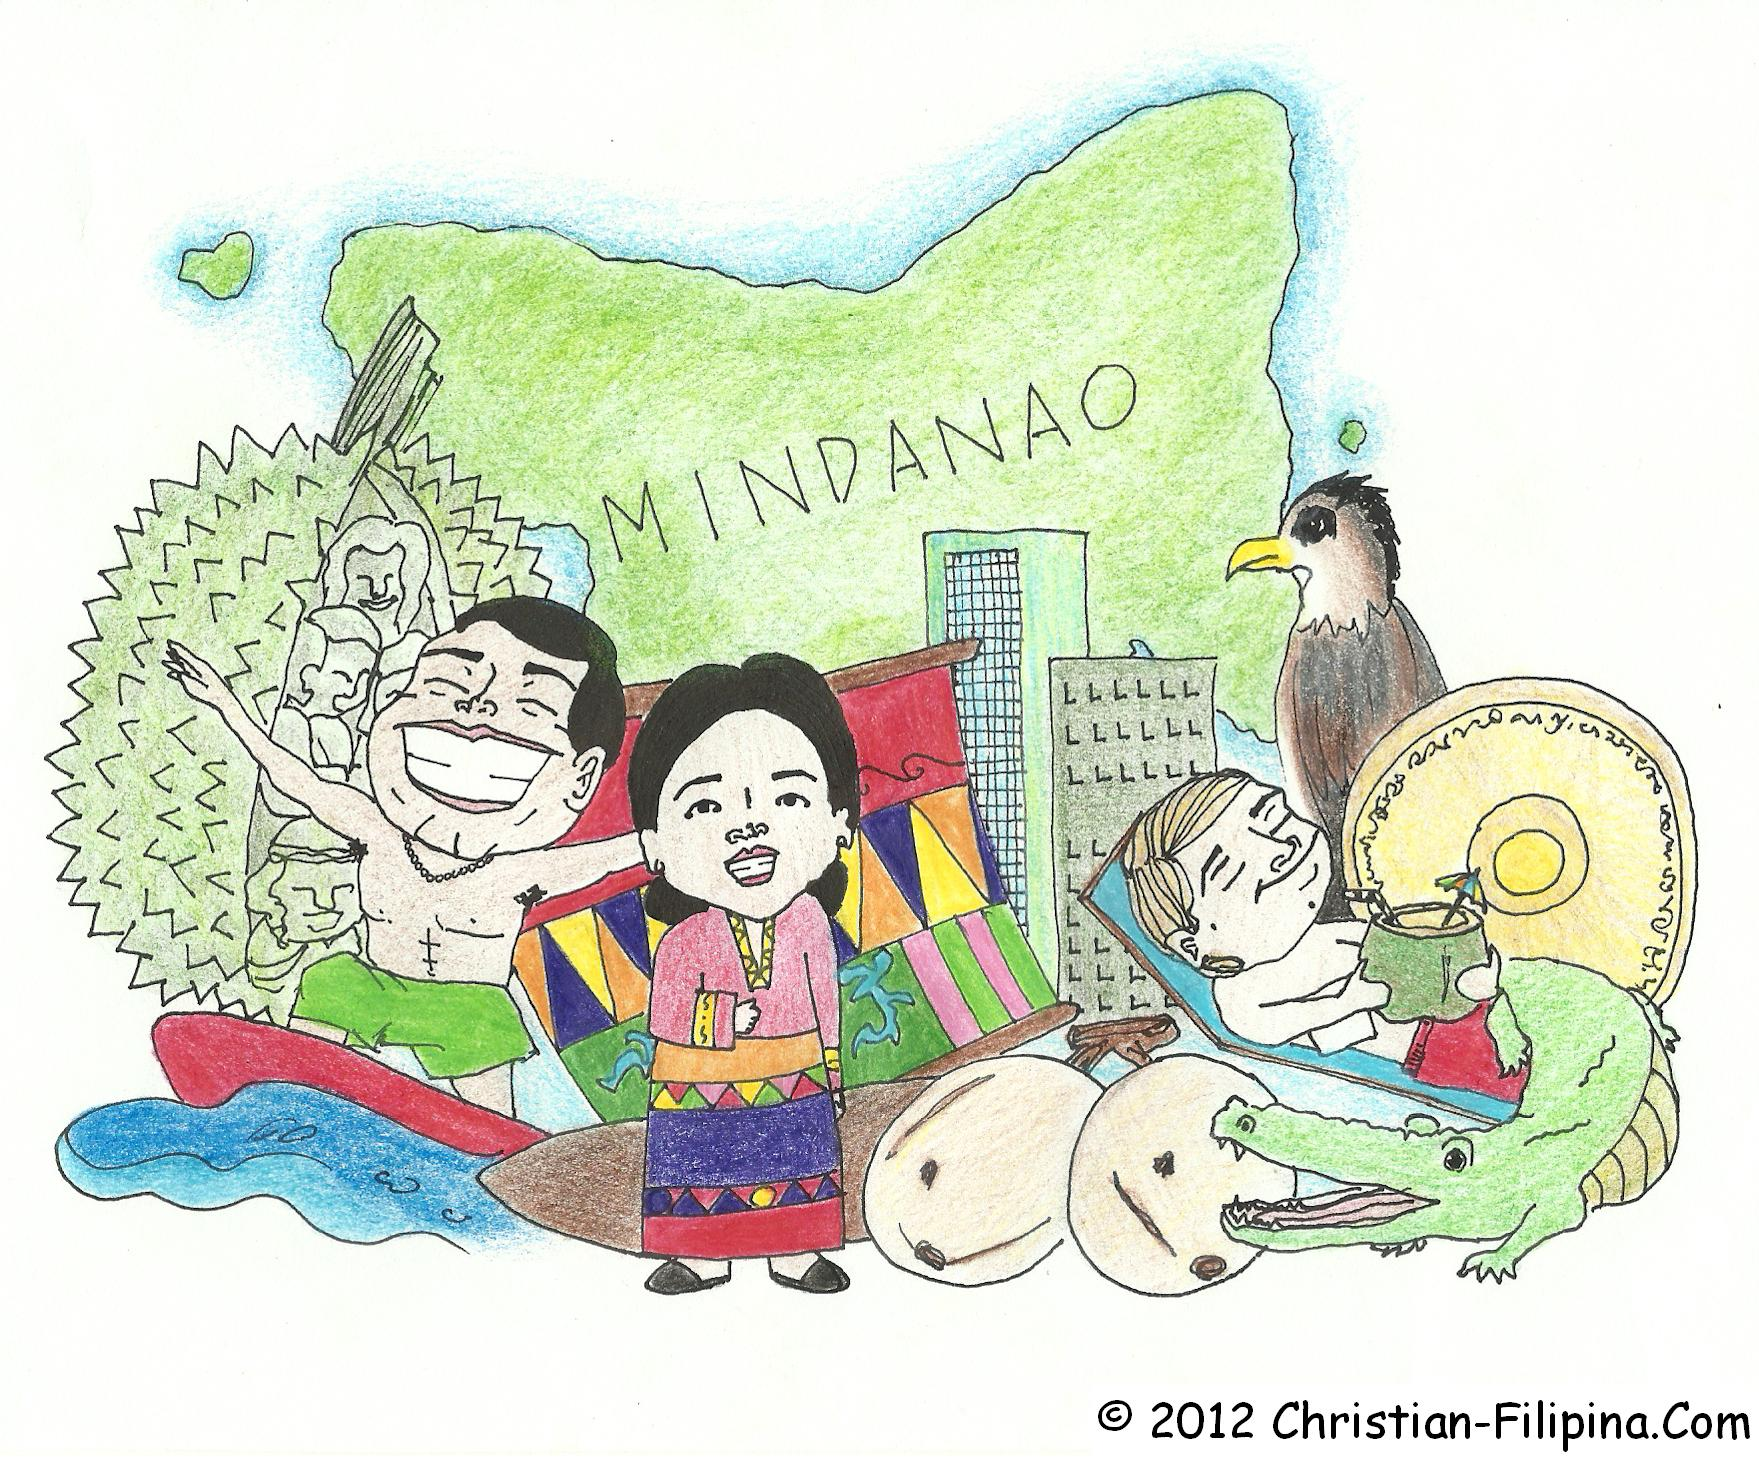 Illustration of Mindanao, Philippines, with Durian, surfing, sinbathing, and other cultural items